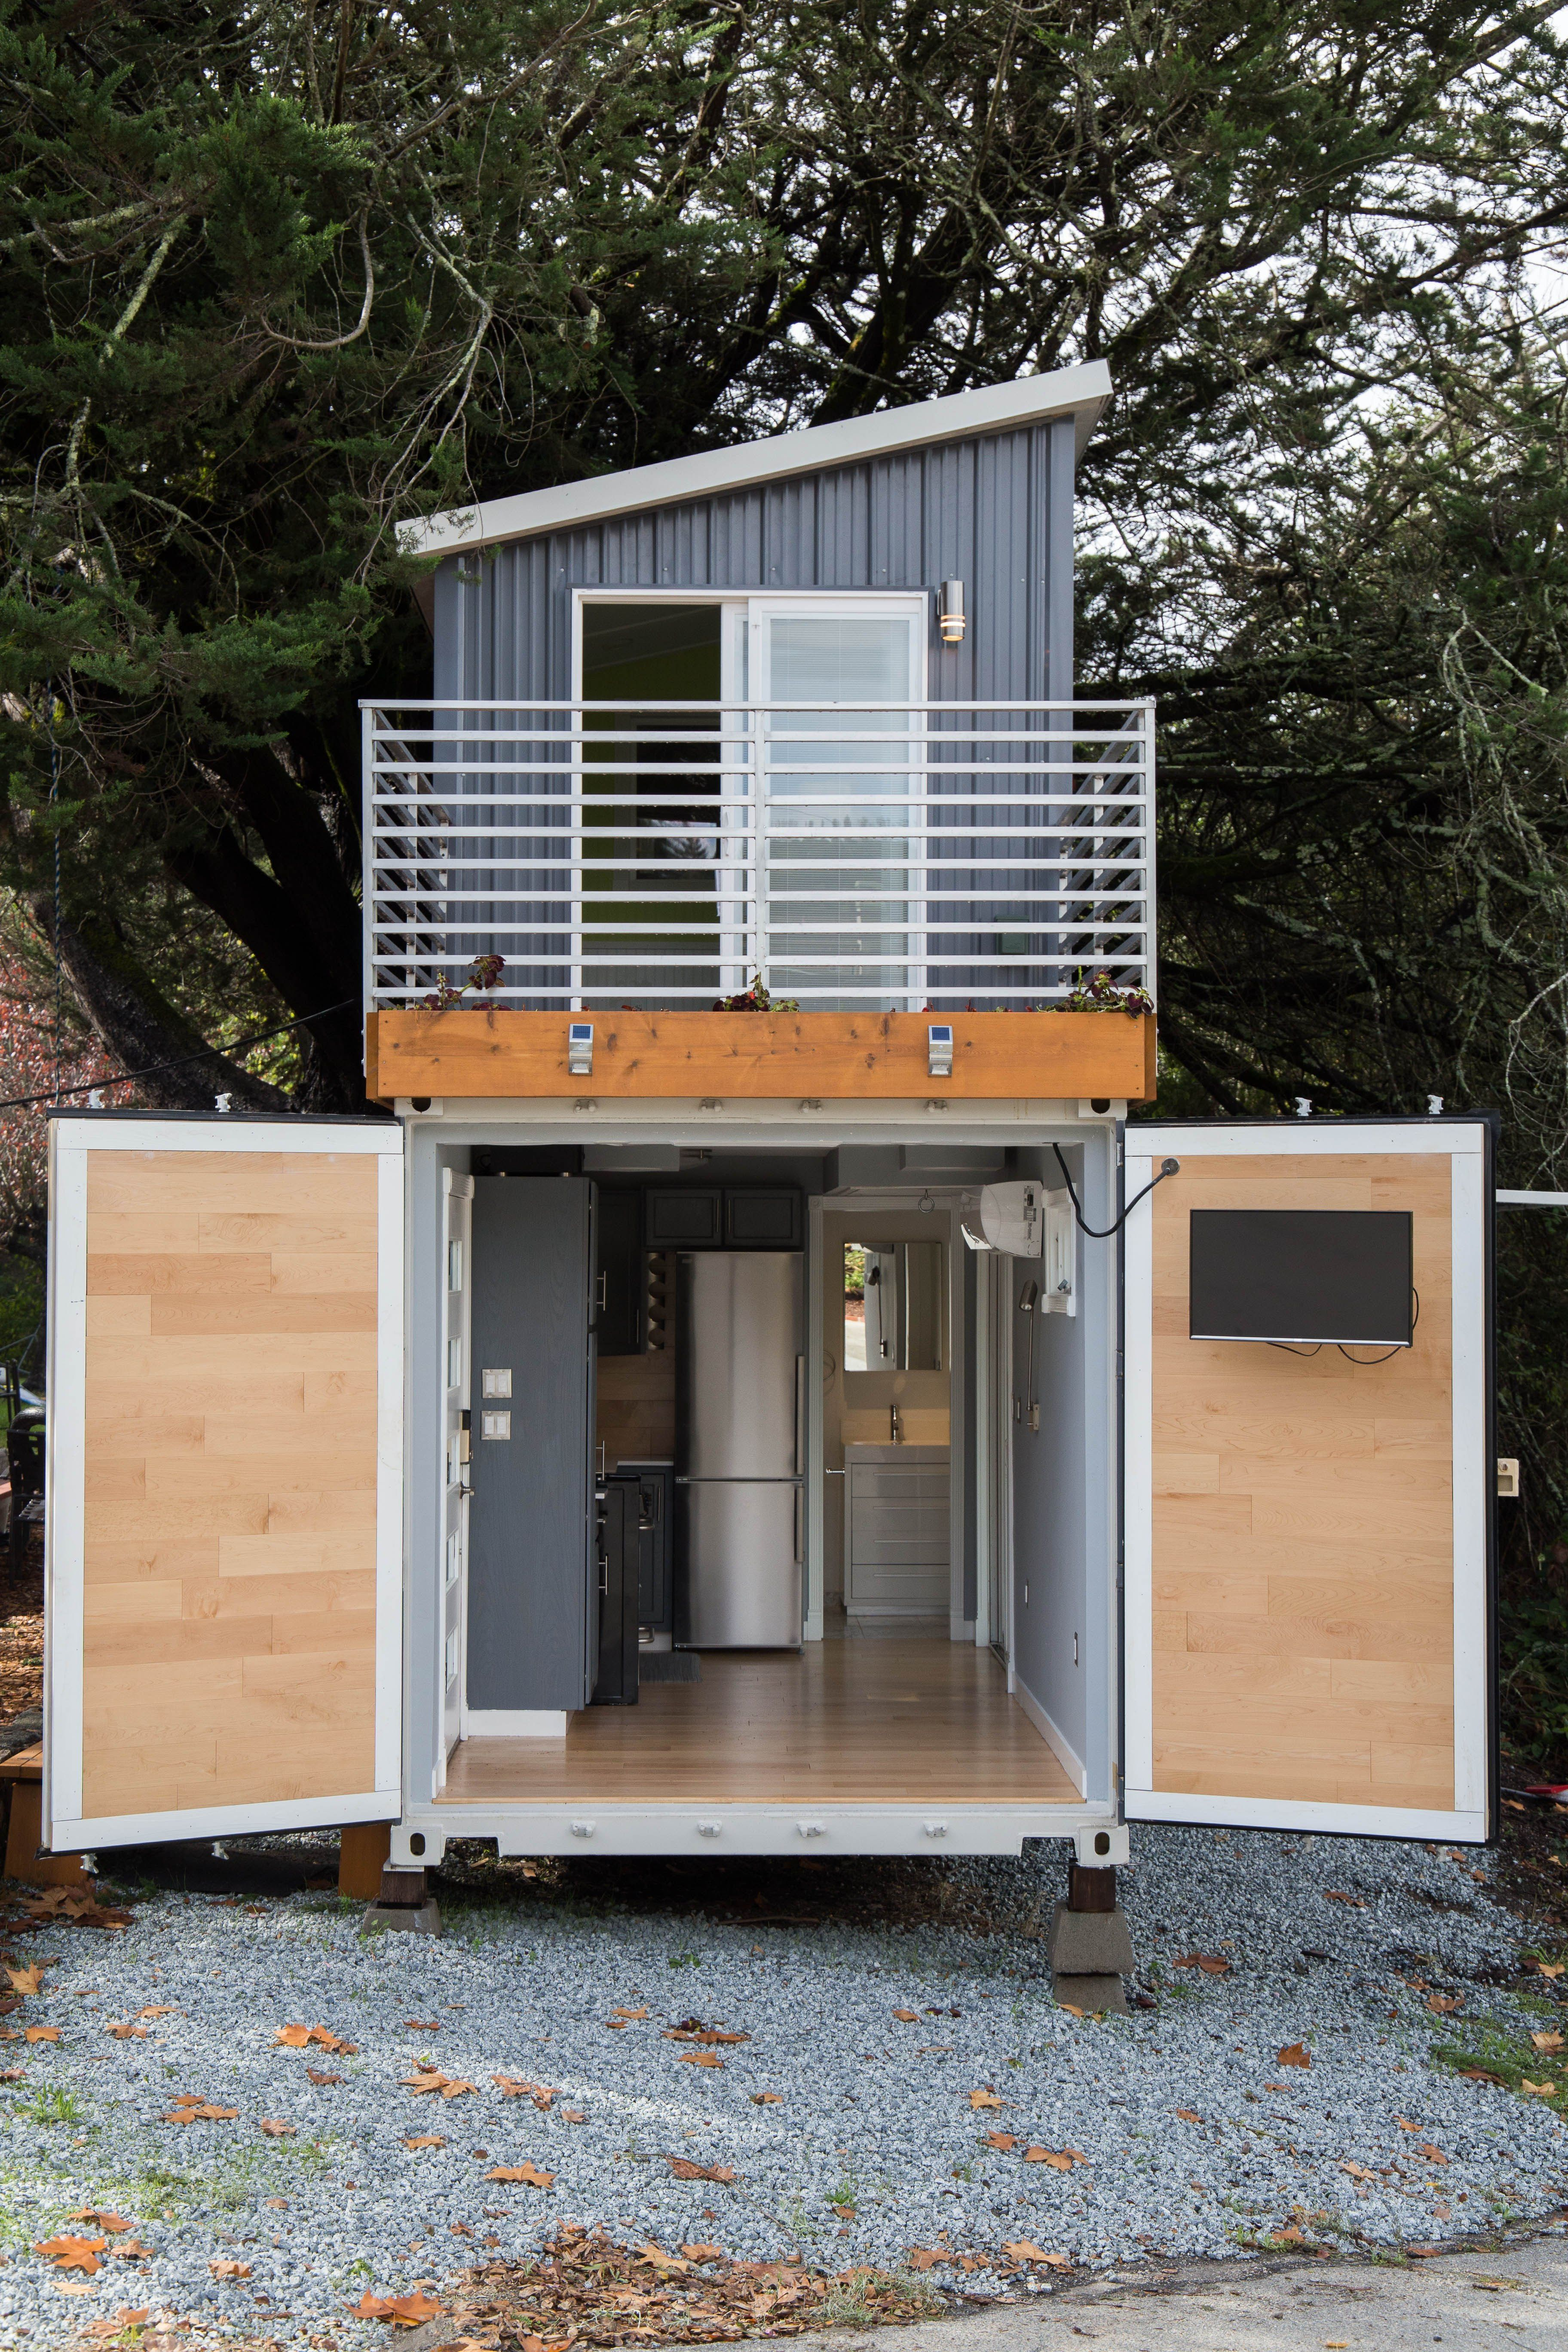 Haus Container Welcome To Boxed Haus Boxed Haus Home Building A